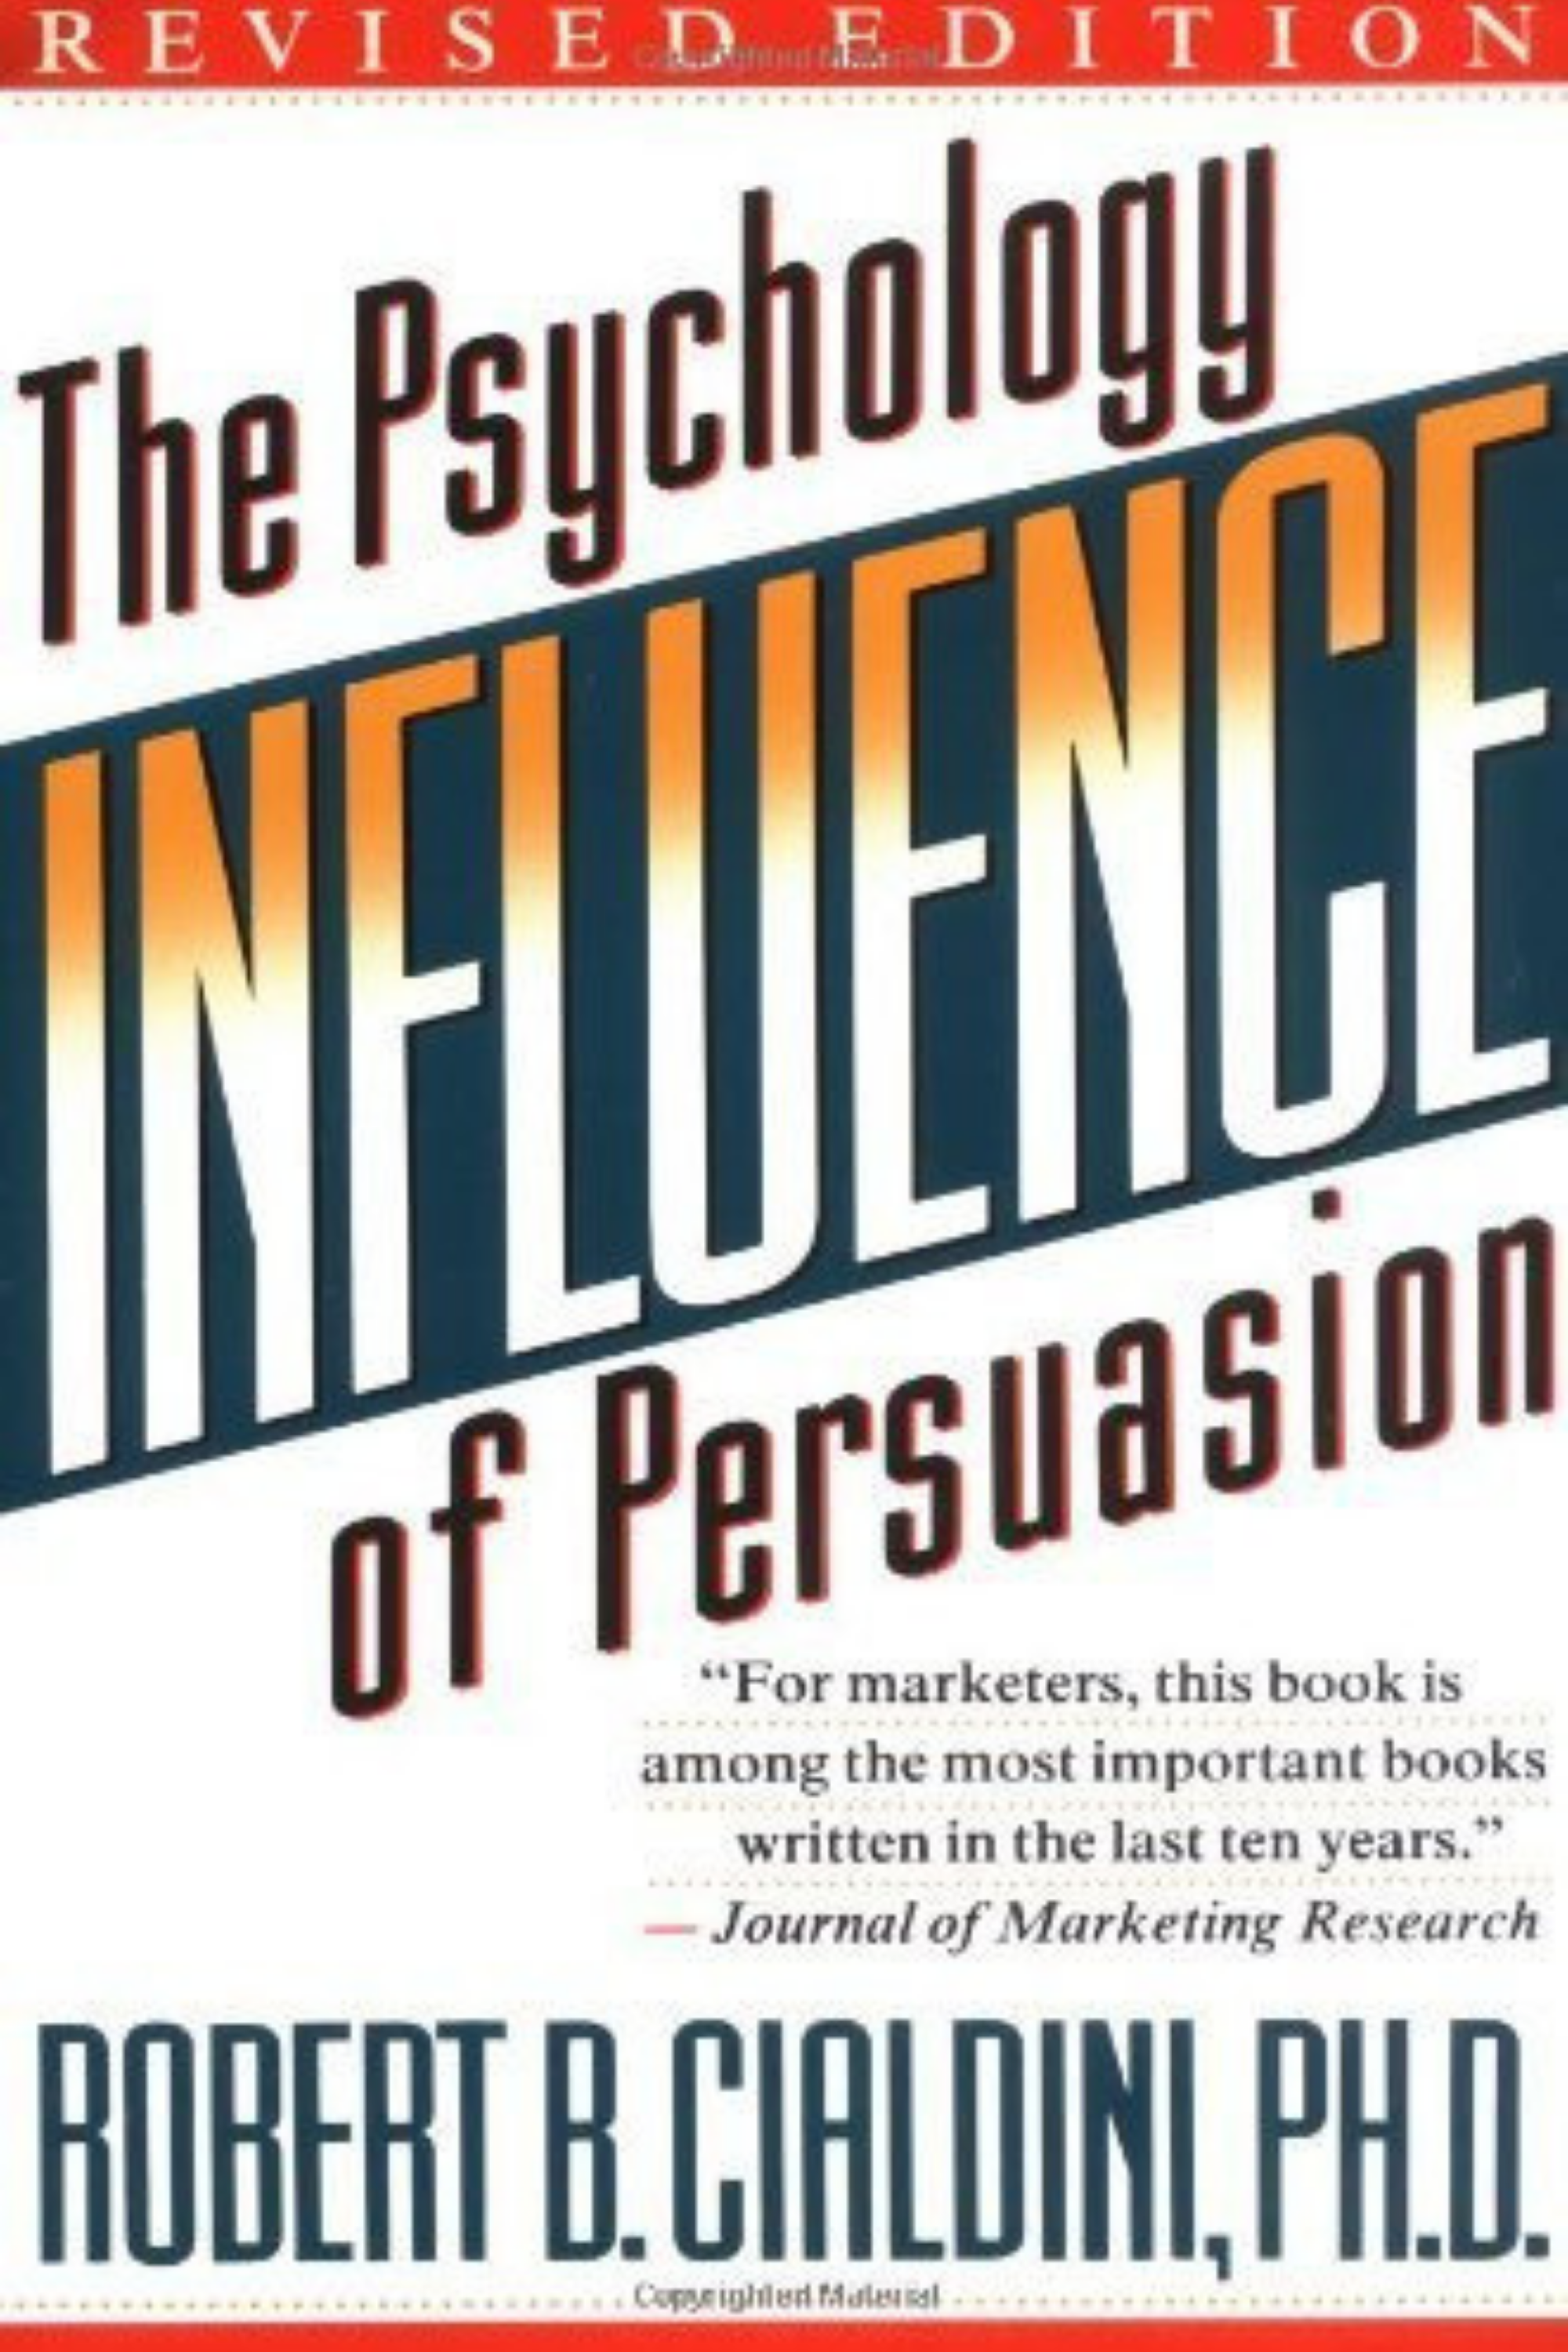 Influence Robert B. Cialdini Courtney Elmer.png